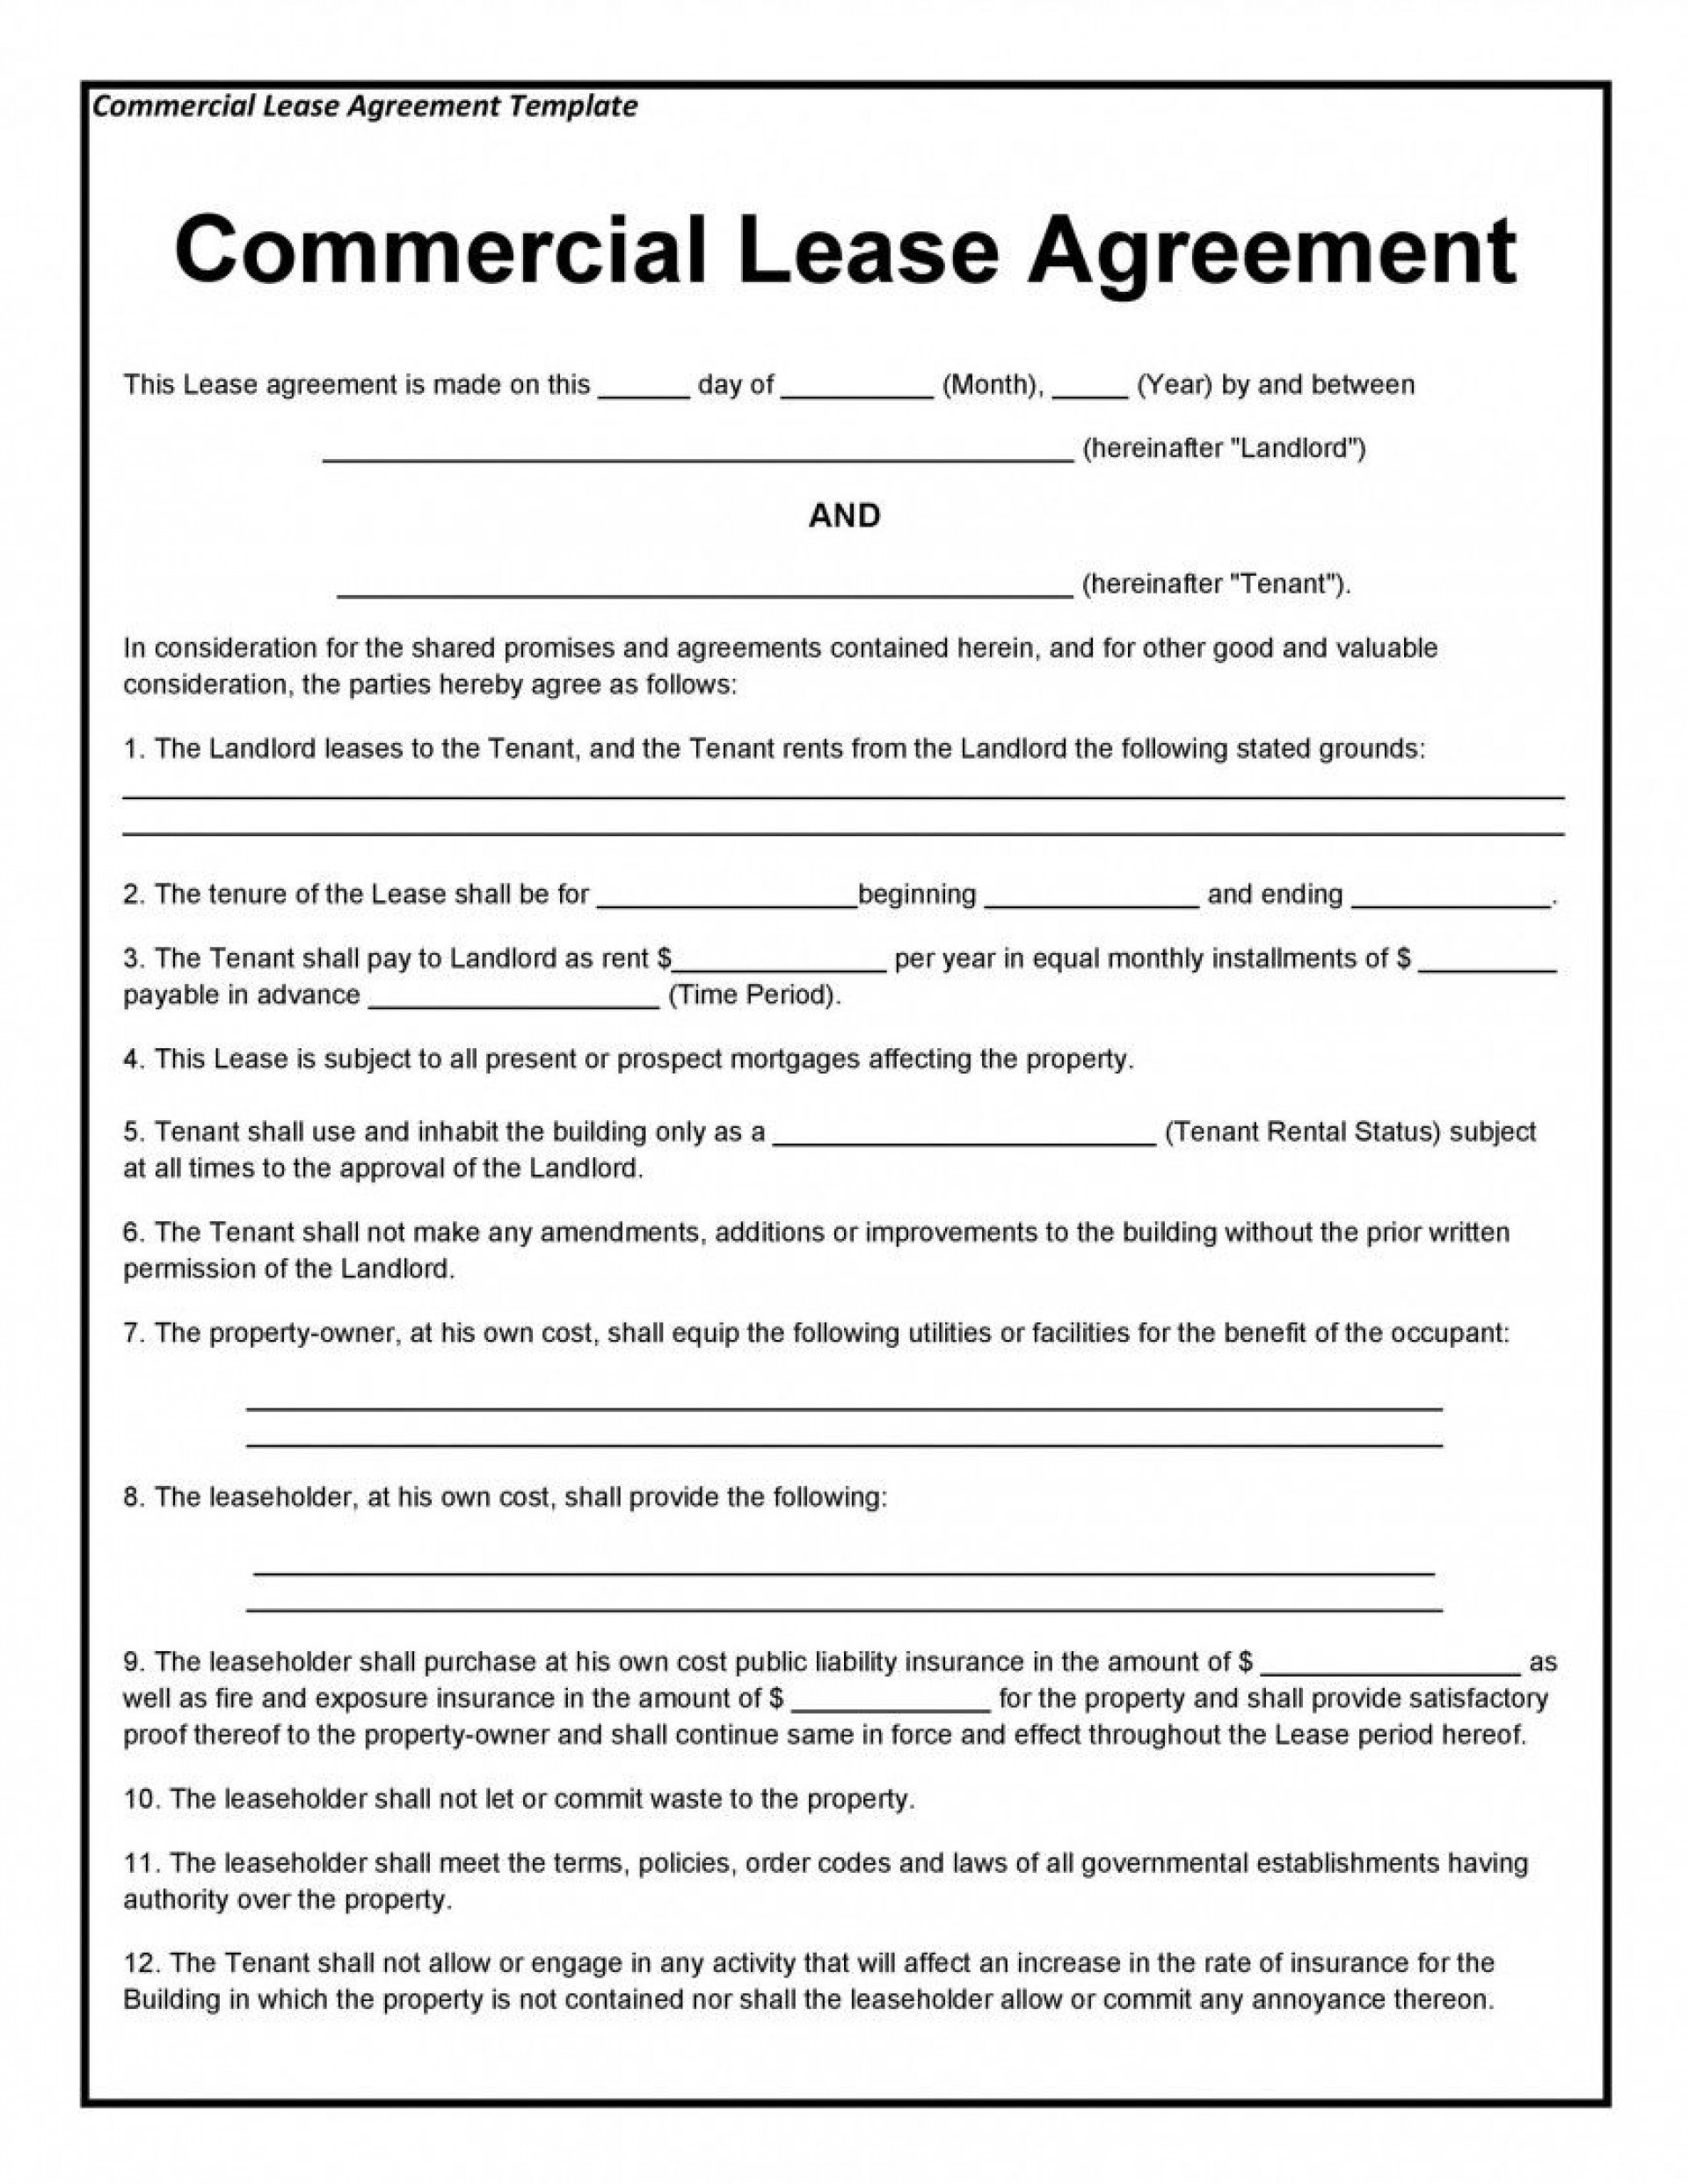 000 Unique Simple Lease Agreement Template High Resolution  Tenancy Free Download Rent Format In Word India Rental1920